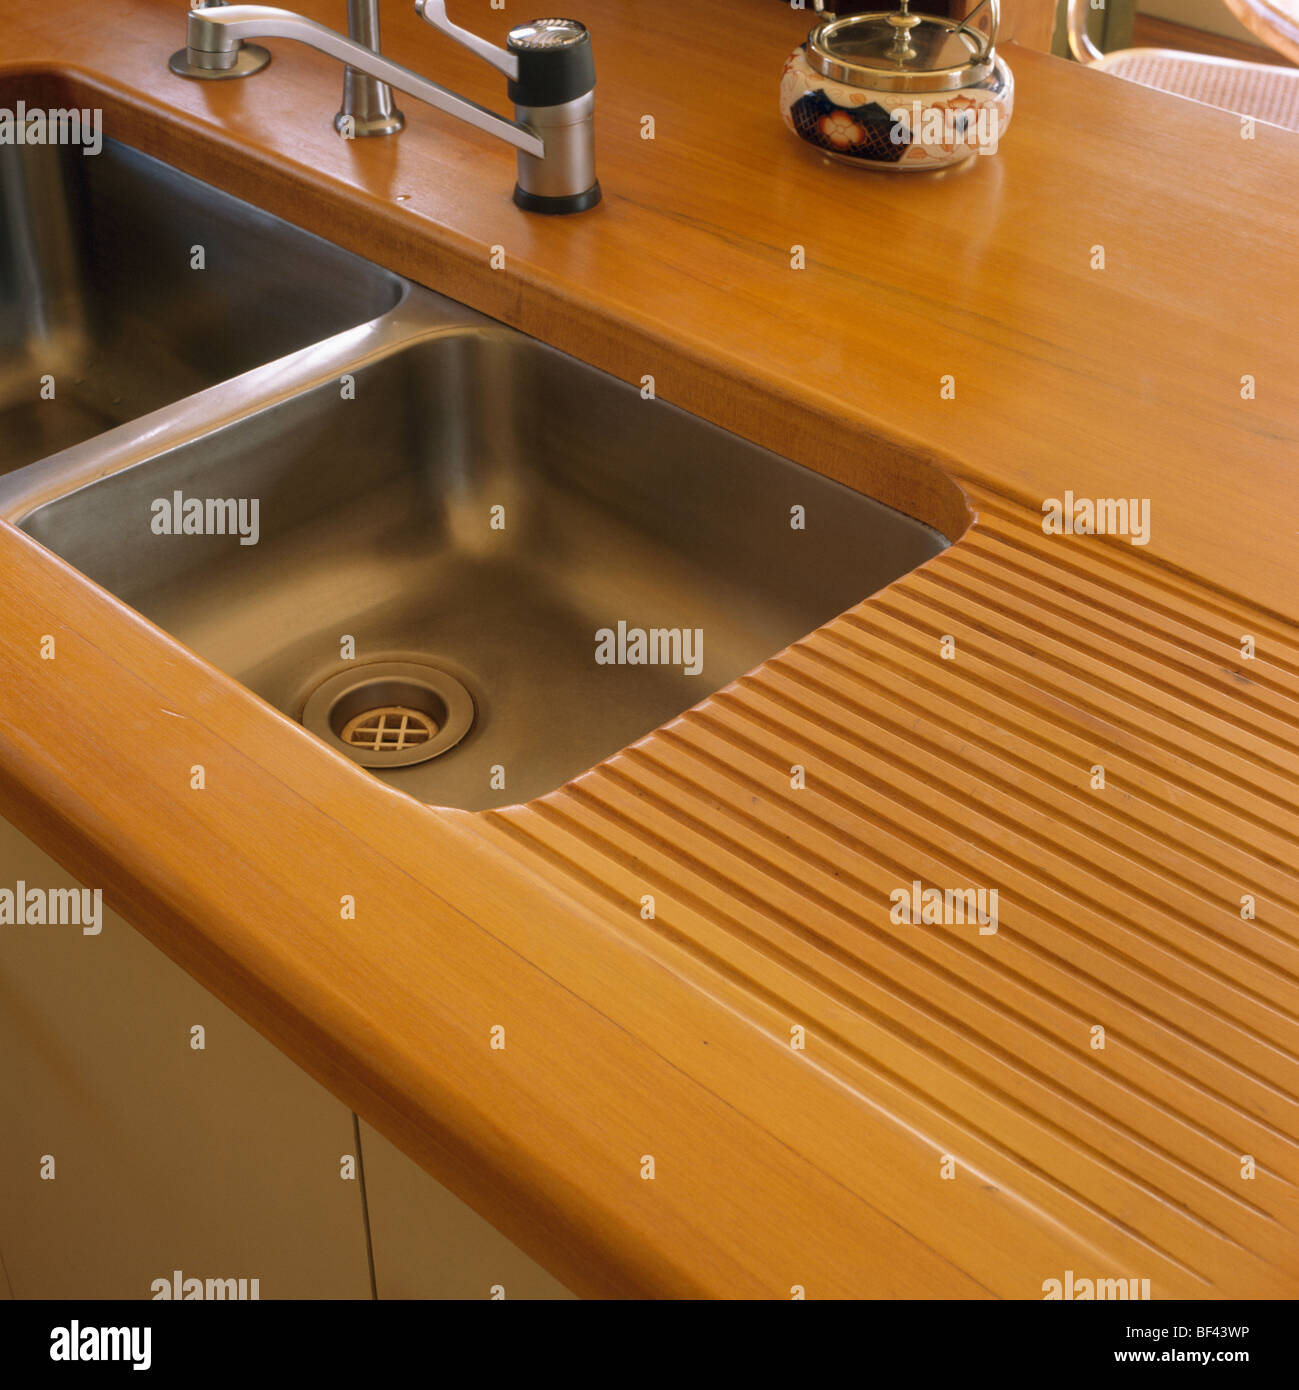 close-up of under-set stainless-steel double sink sand wooden